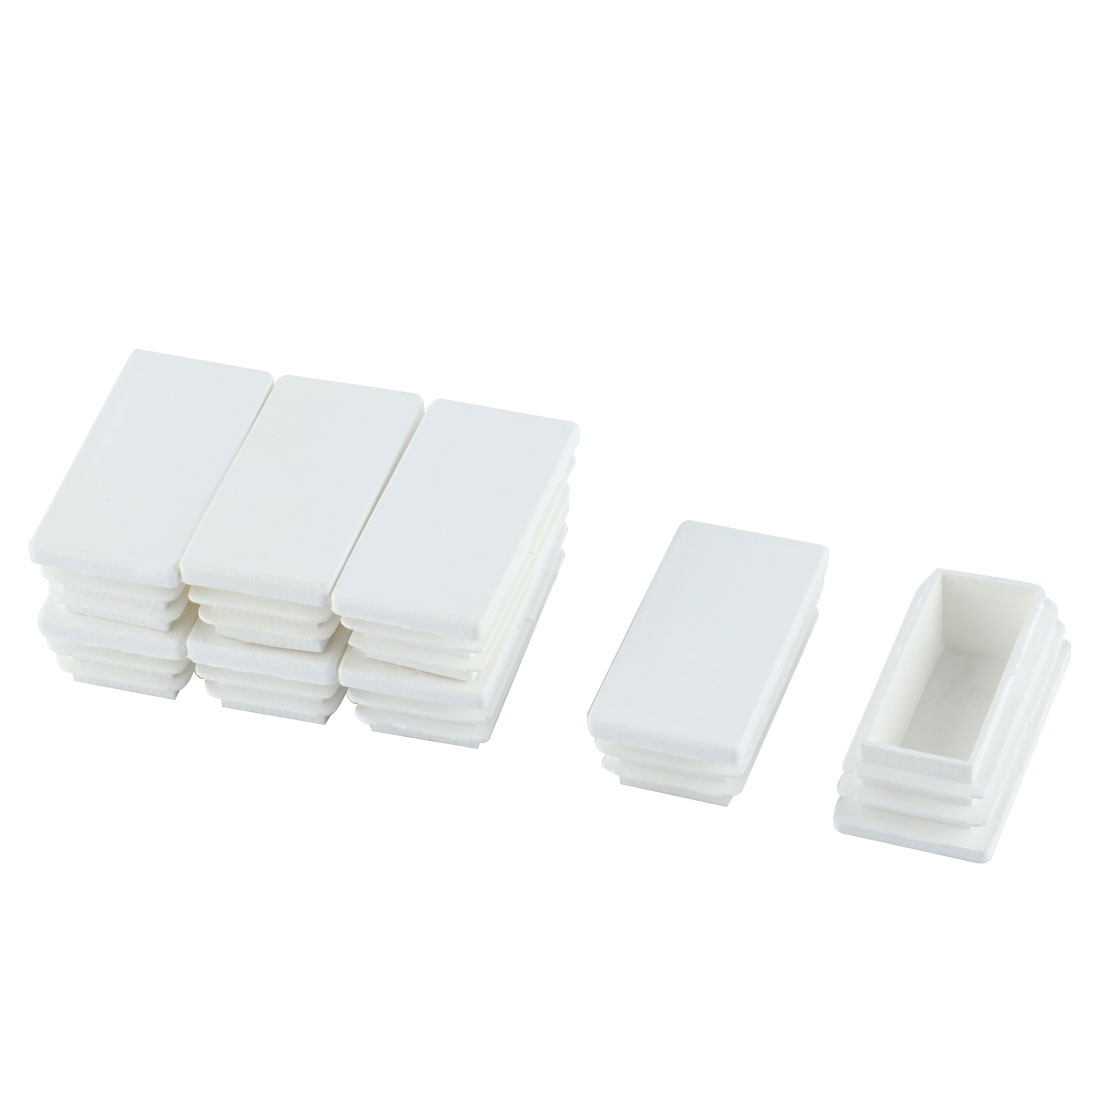 Furniture Table Legs Feet Plastic Rectangle Tube Inserts Plugs White 8pcs